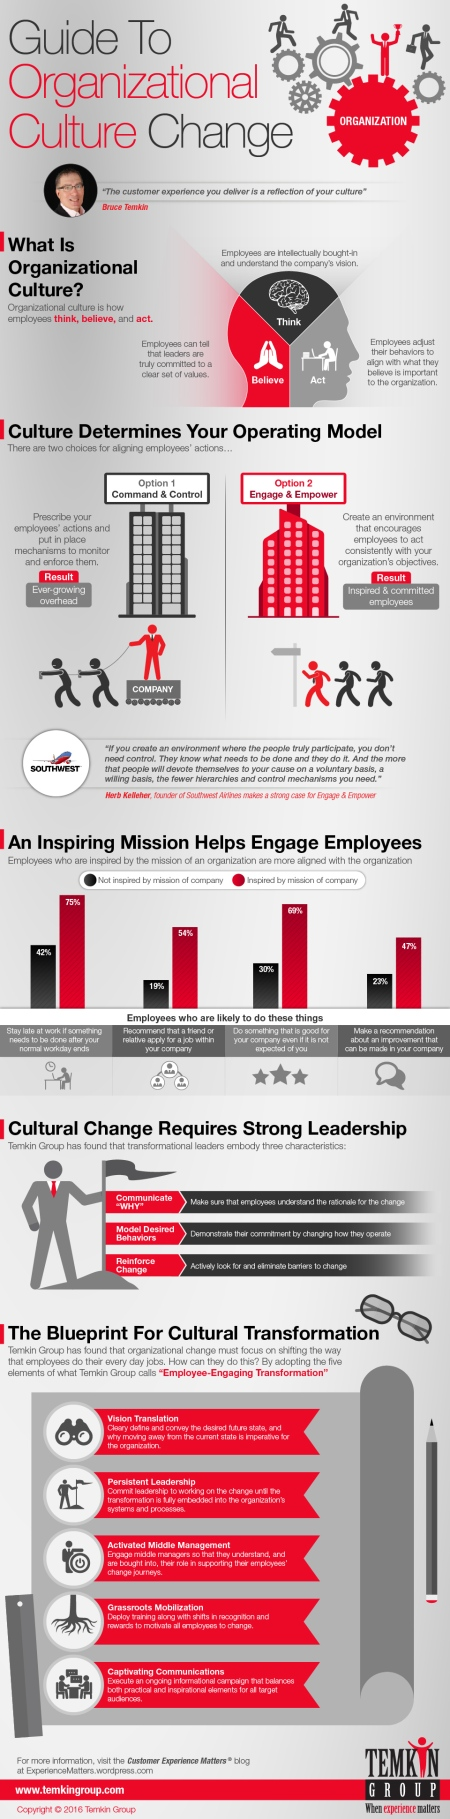 guide-to-organizational-culture-change